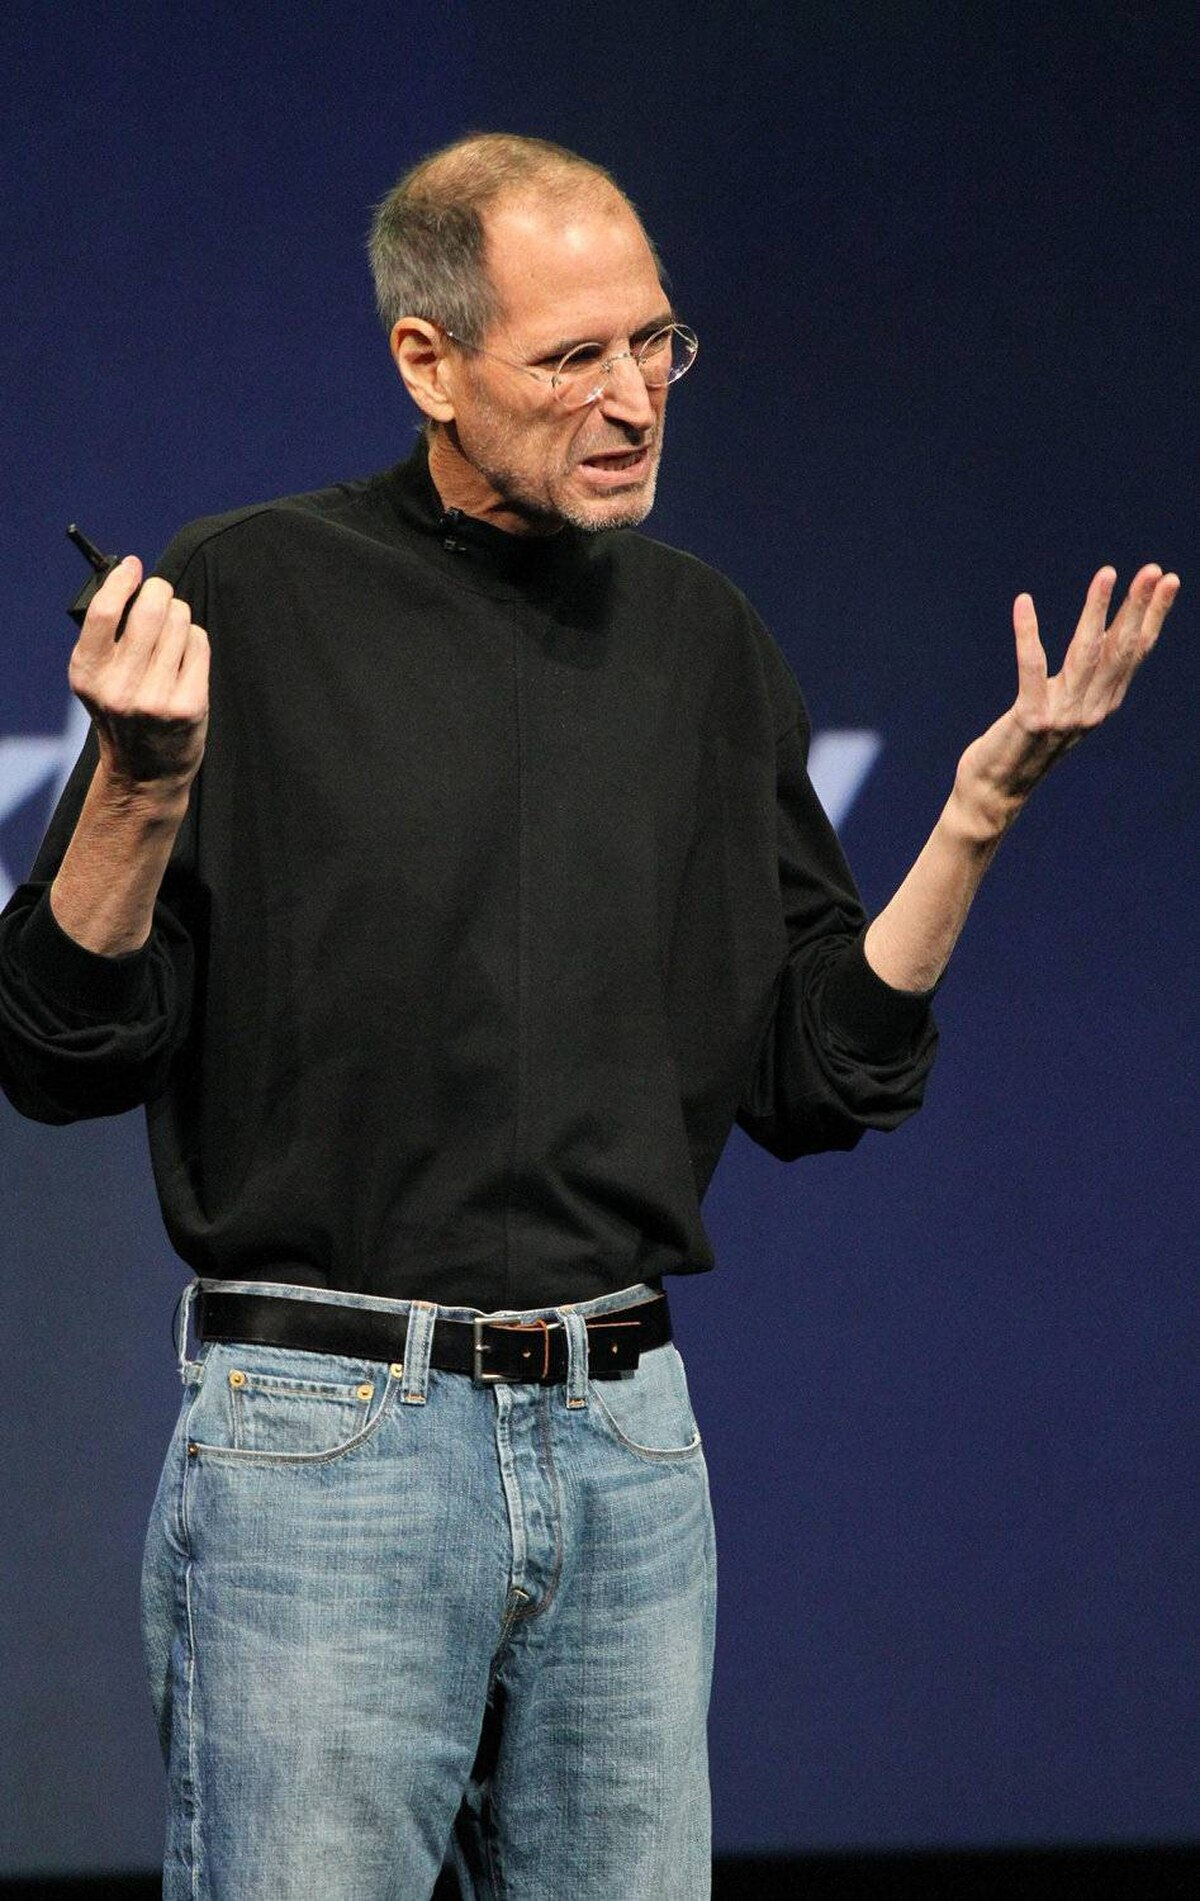 """Customer pays more As Apple CEO Steve Jobs described his company's strategy for negotiating with the Publisher Defendants, """"We'll go to [an] agency model, where you set the price, and we get our 30 per cent, and yes, the customer pays a little more, but that's what you want anyway."""" Apple was perfectly willing to help the Publisher Defendants obtain their objective of higher prices for consumers by ending Amazon's """"$9.99"""" price program as long as Apple was guaranteed its 30 per cent margin and could avoid retail price competition from Amazon."""